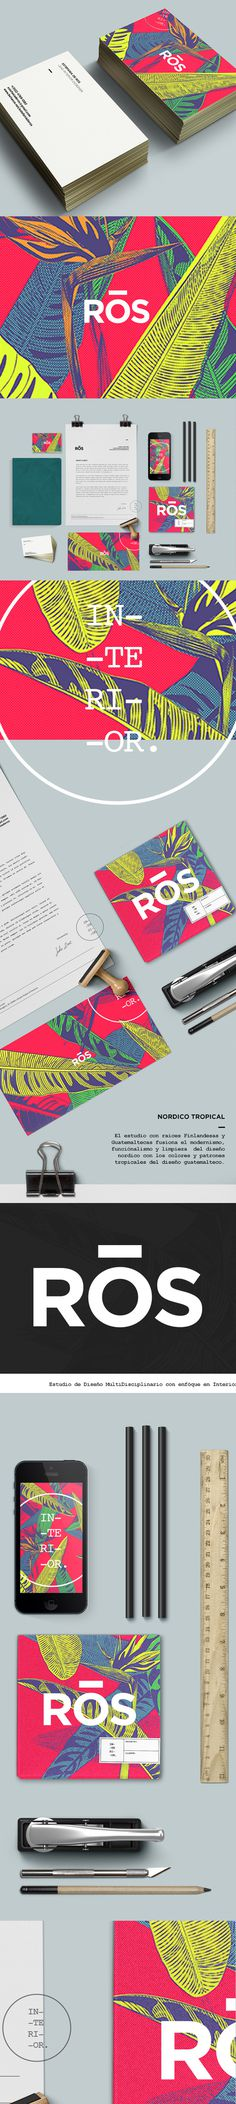 Ros Interior Design on Behance #design #identity